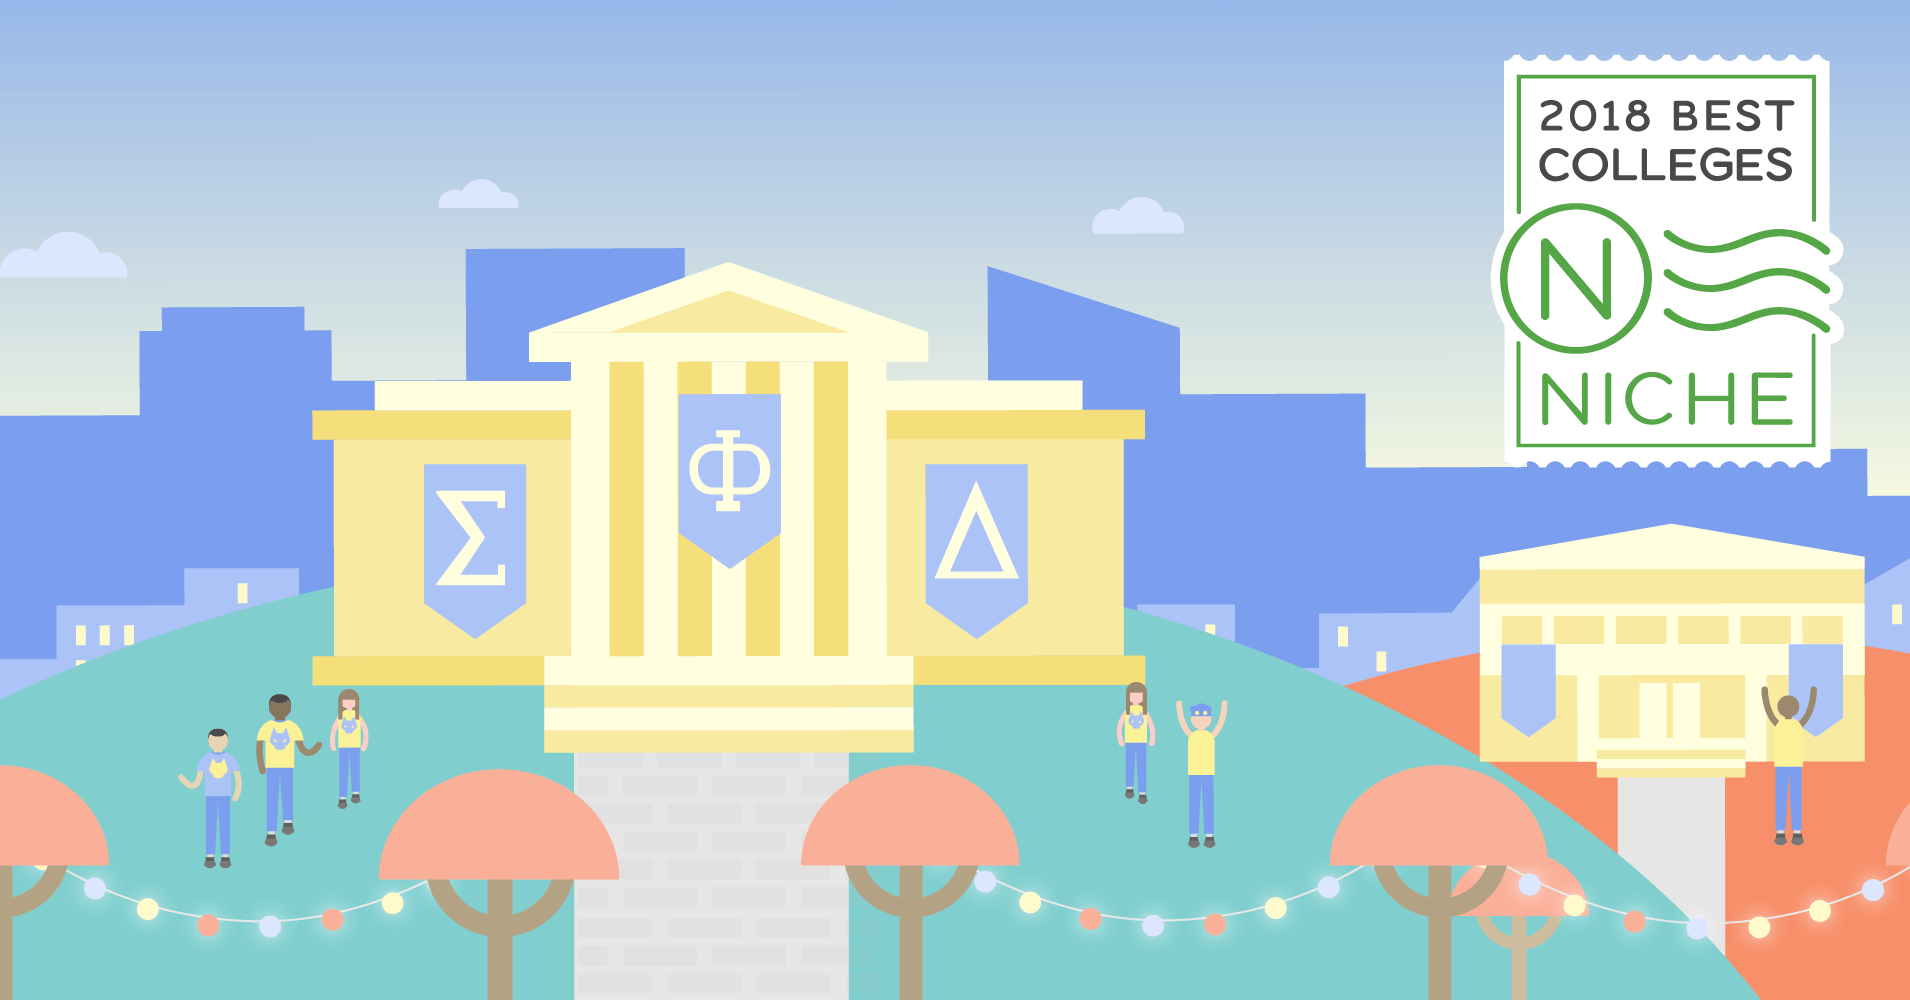 greek life in american campuses essay At some point, major universities and colleges that still retain the greek system will need to consider whether the greek system, on balance, still serves a useful purpose or is an anachronism.